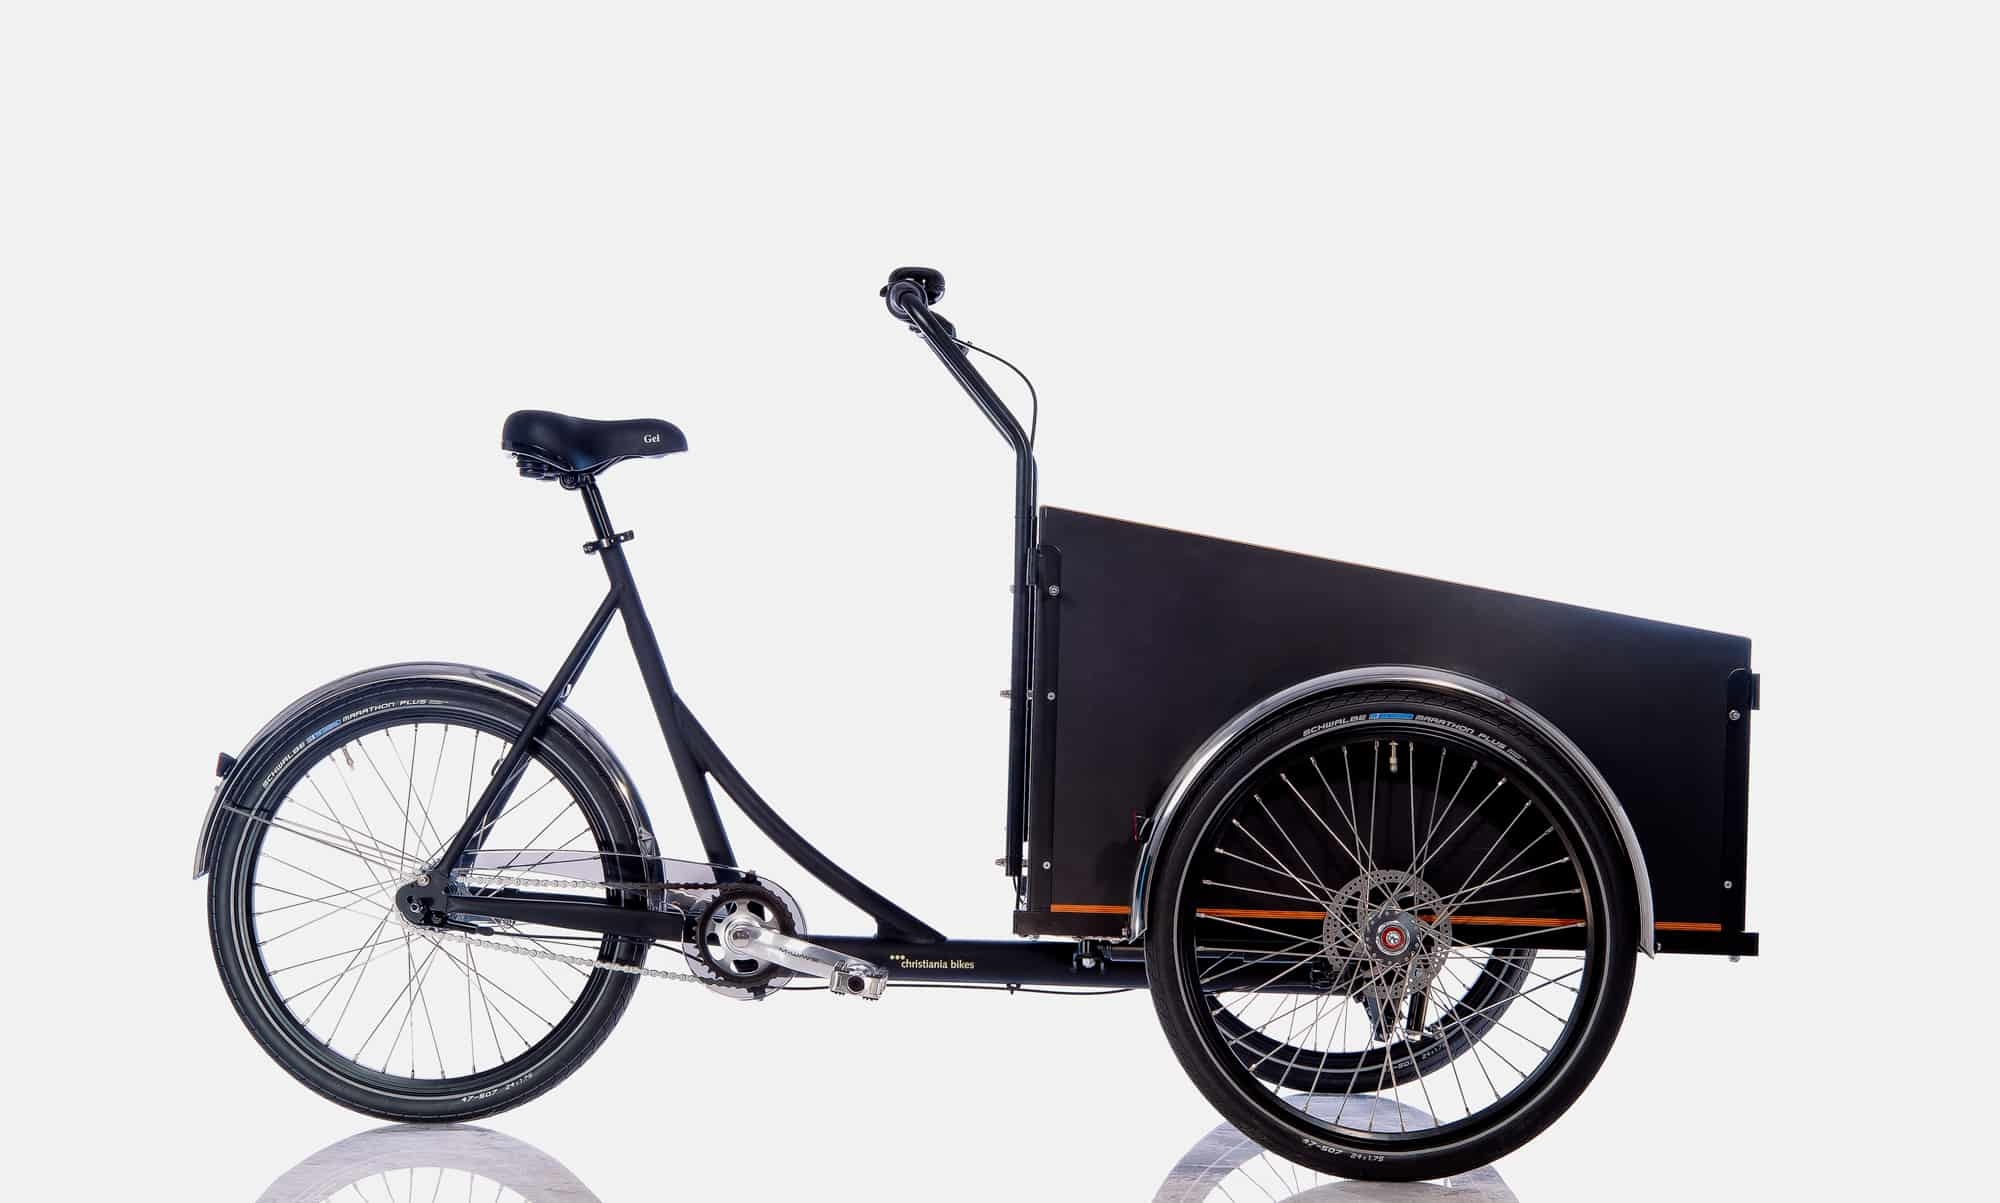 Christiania Ladcykel Model Light Alu (DESIGN SELV)